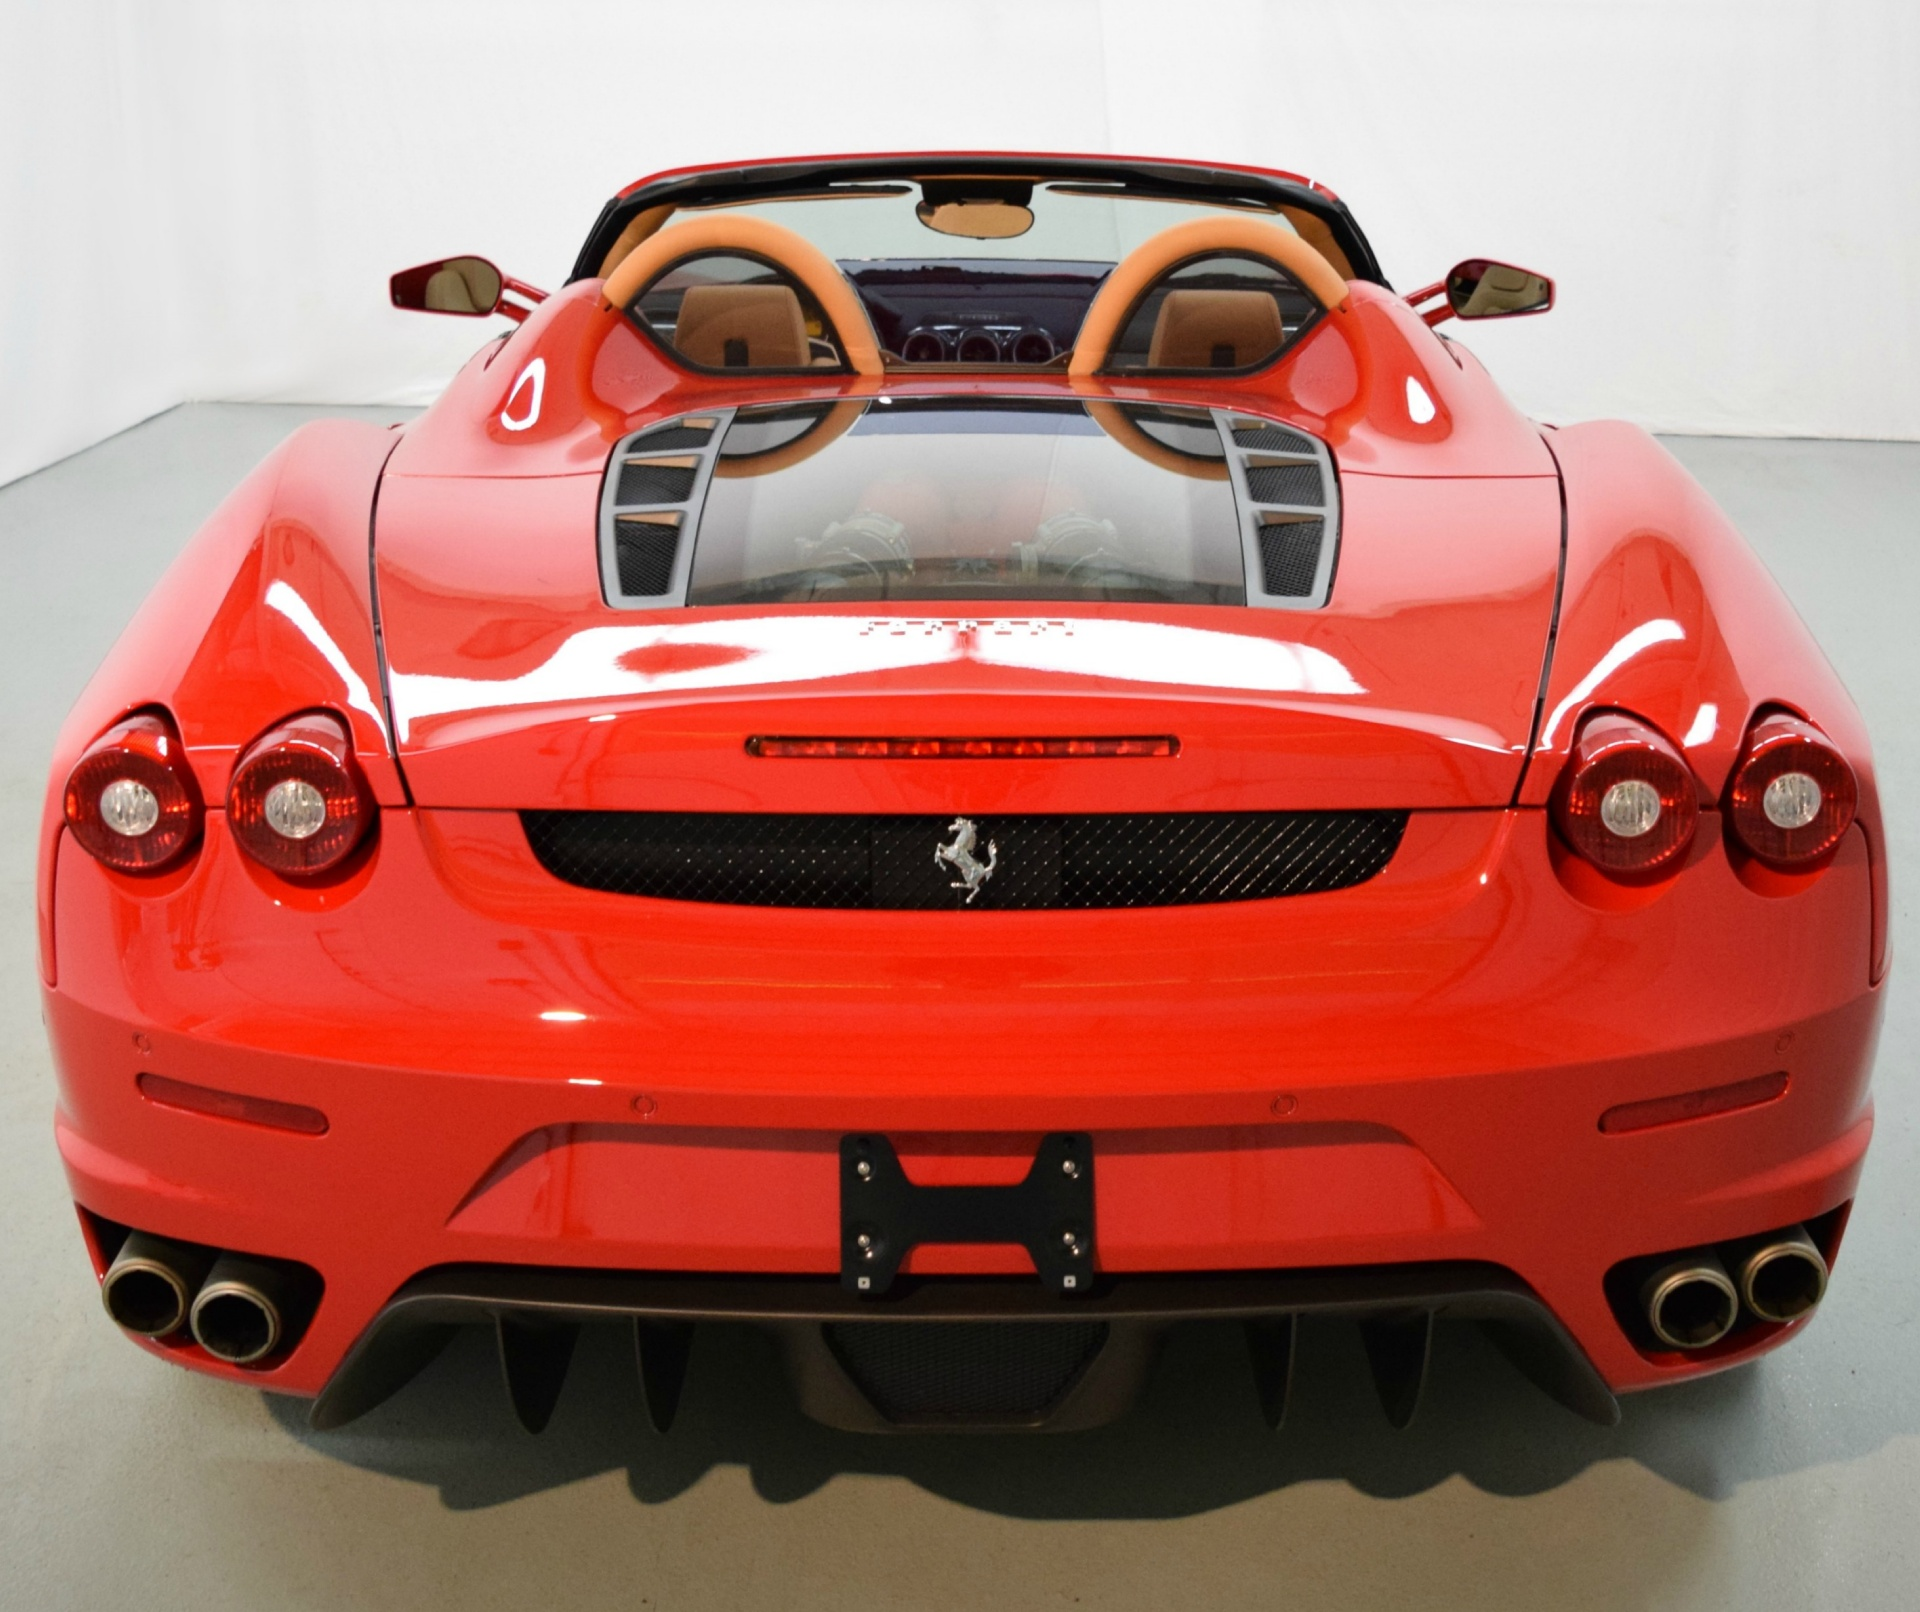 19 Best Images About Ferrari F430 On Pinterest: 2007 Ferrari F430 Spider For Sale In Norwell, MA 155261